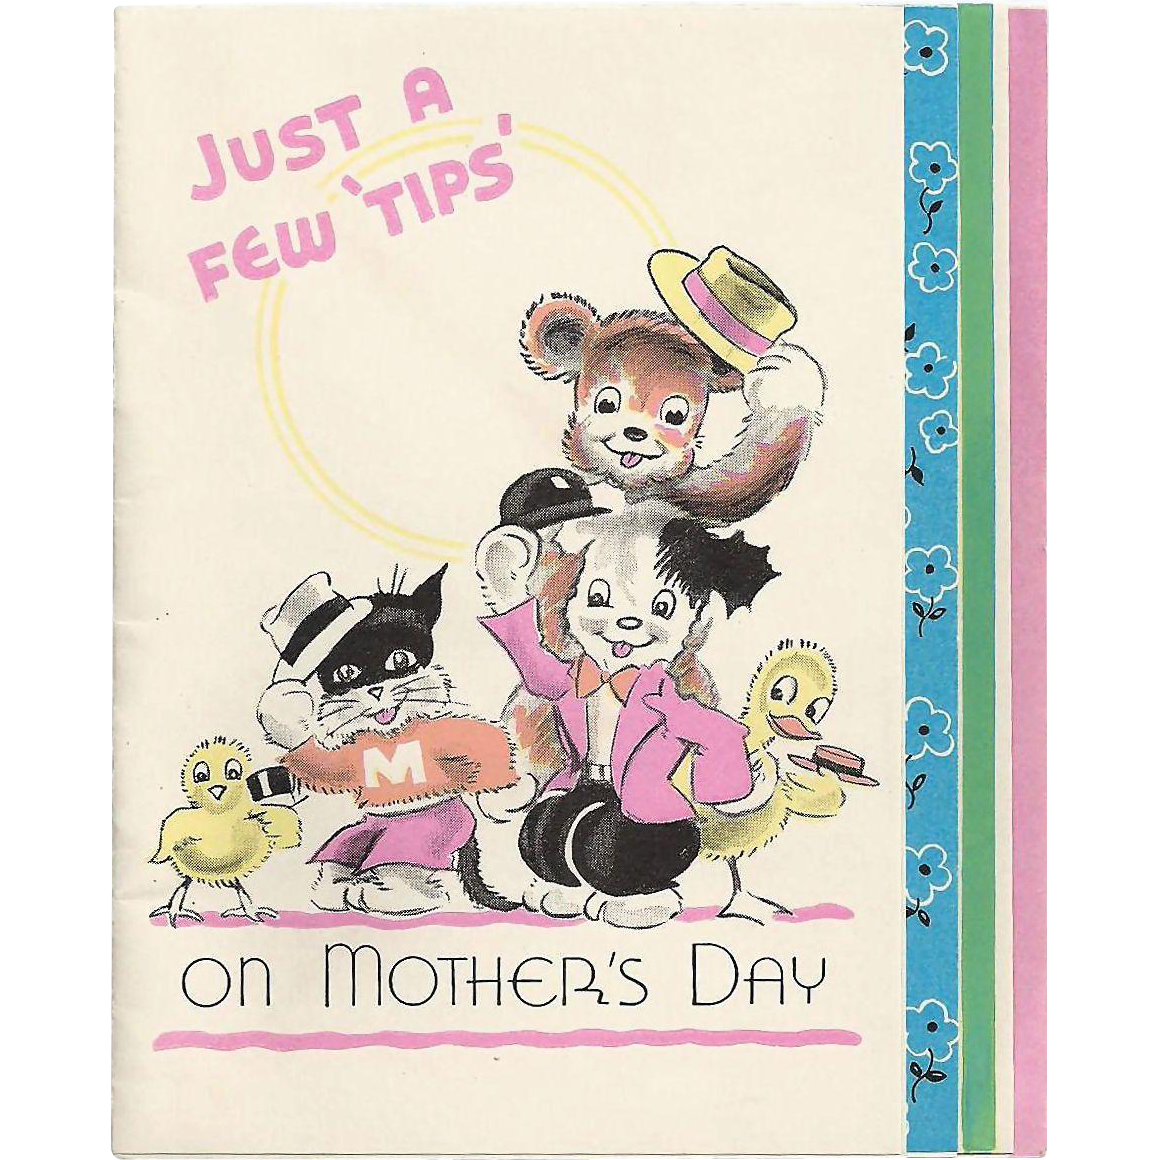 Just A Few Tips On Mother's Day - 1939